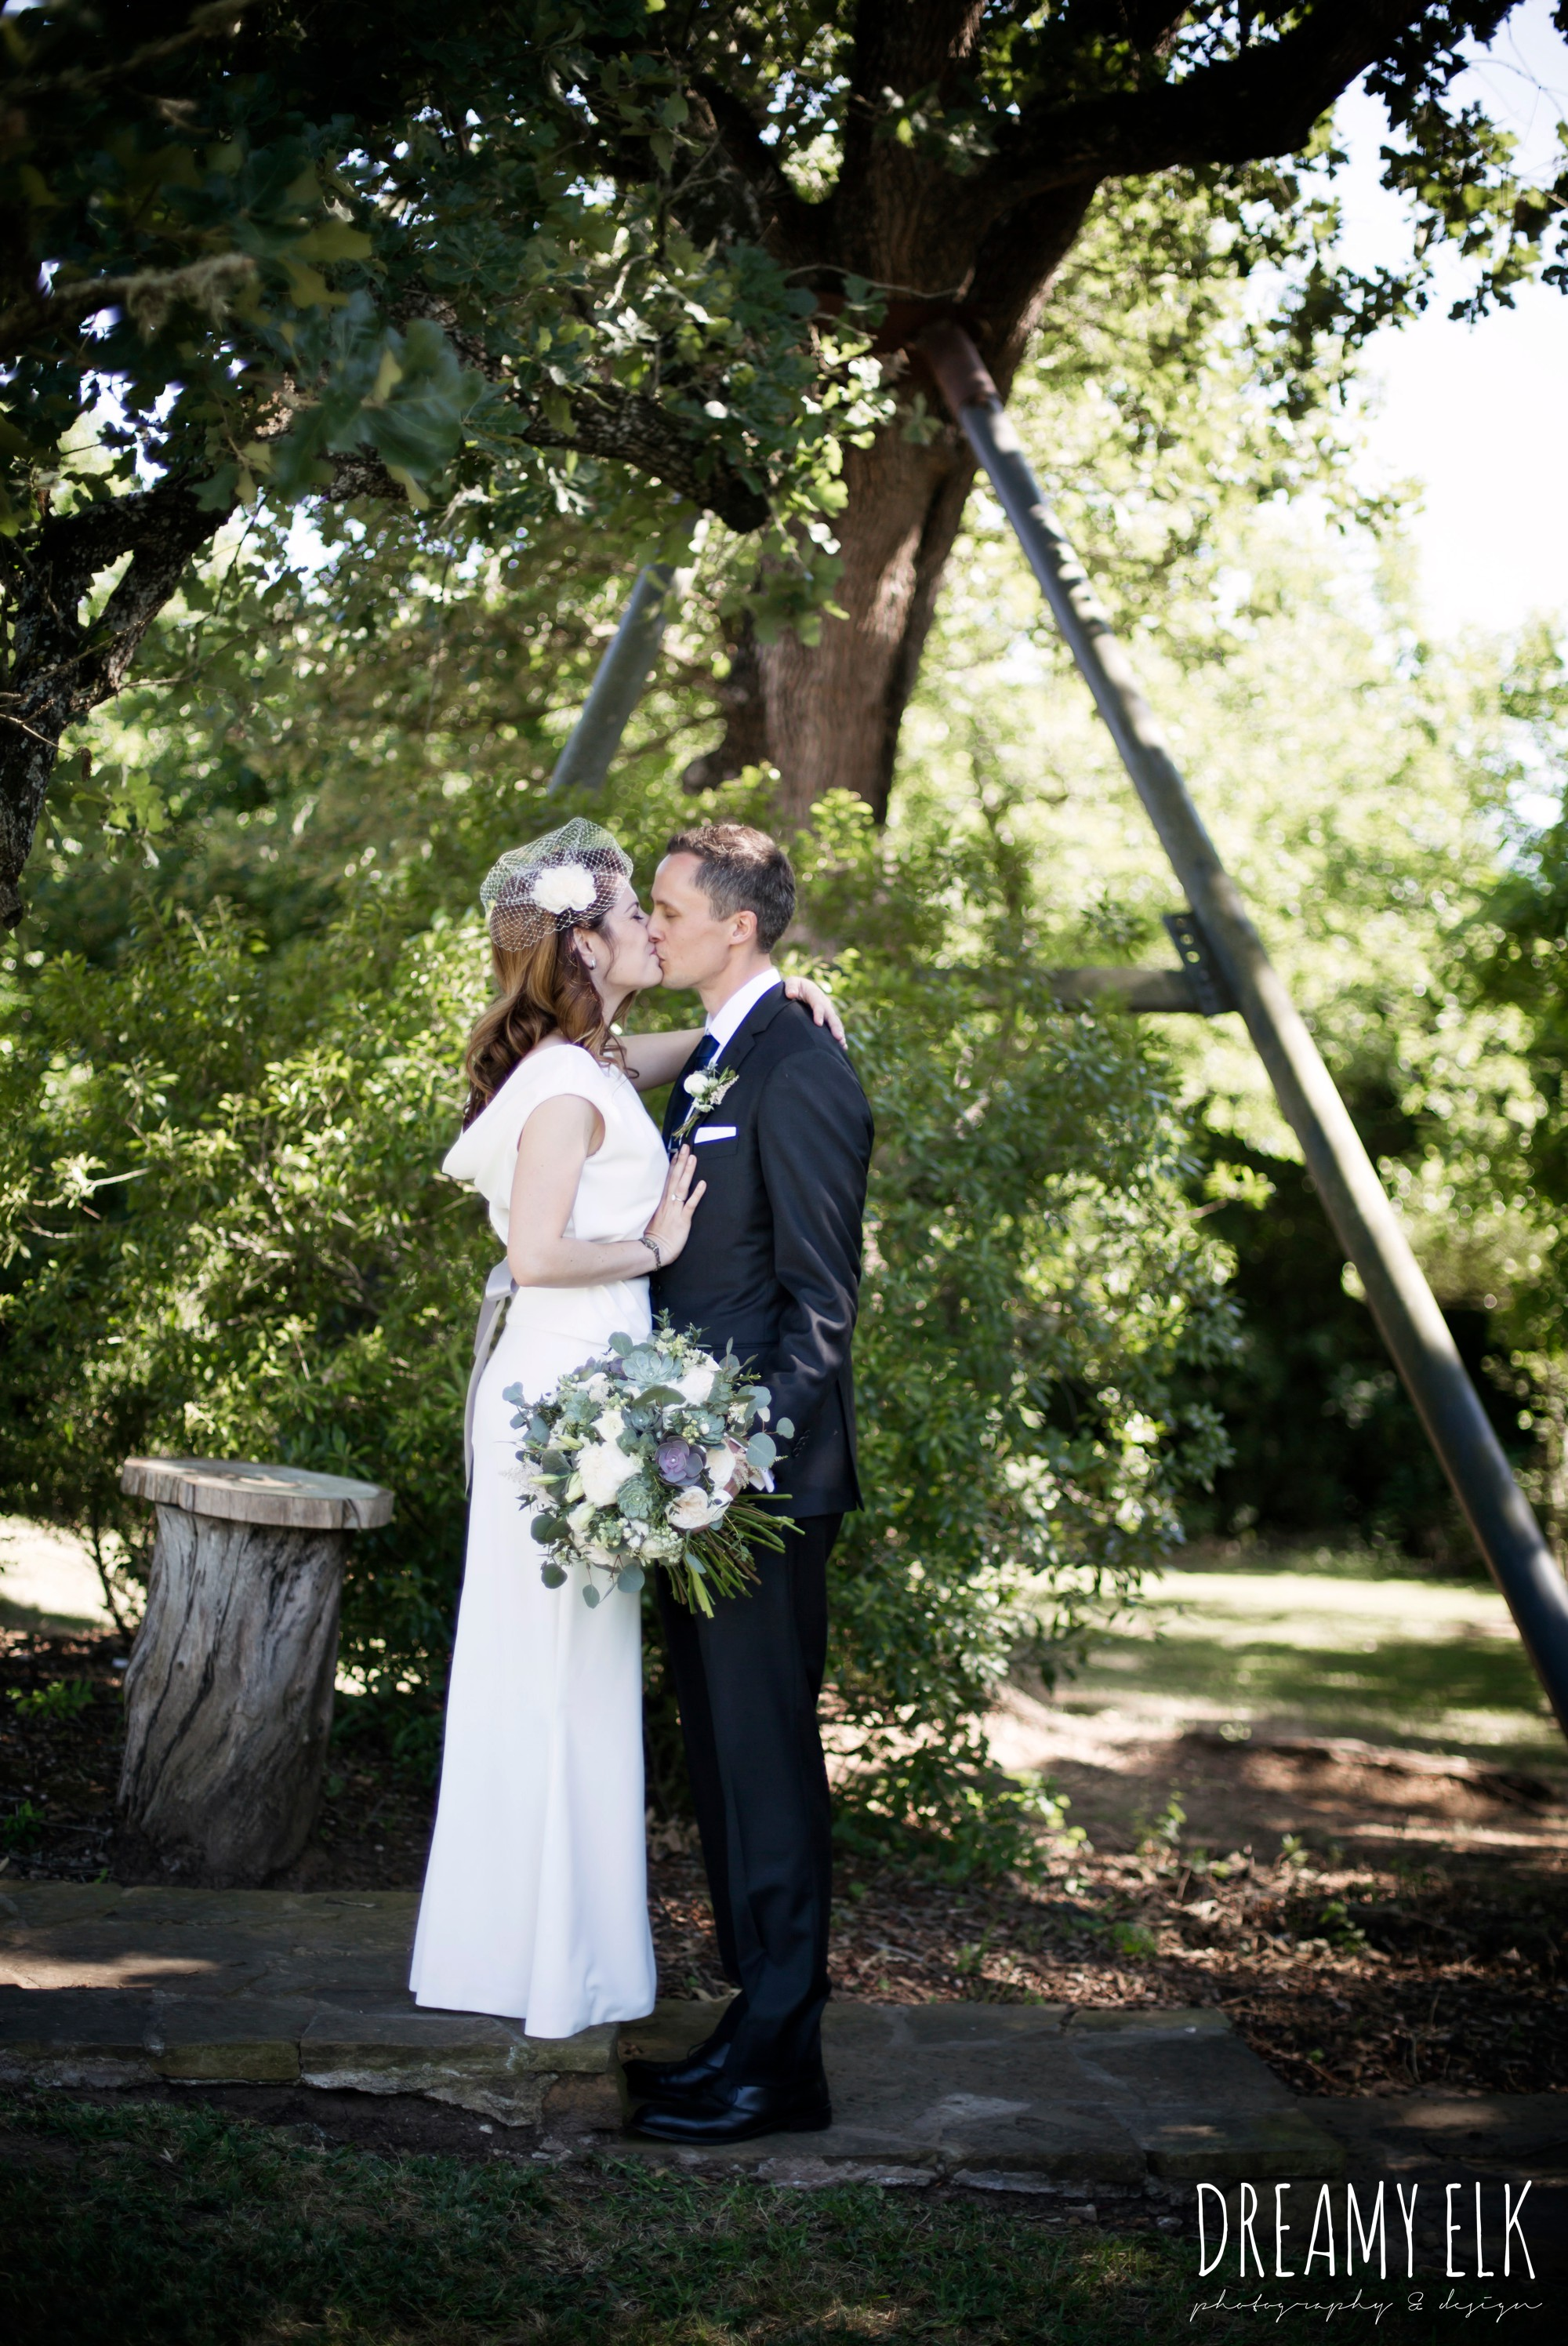 bride and groom portraits, unforgettable floral, white and green succulent wedding bouquet, bride, handmade wedding dress, two piece wedding dress, gray sash, bird cage veil, outdoor april spring wedding photo, double creek crossing, college station, texas, austin wedding photographer {dreamy elk photography and design}